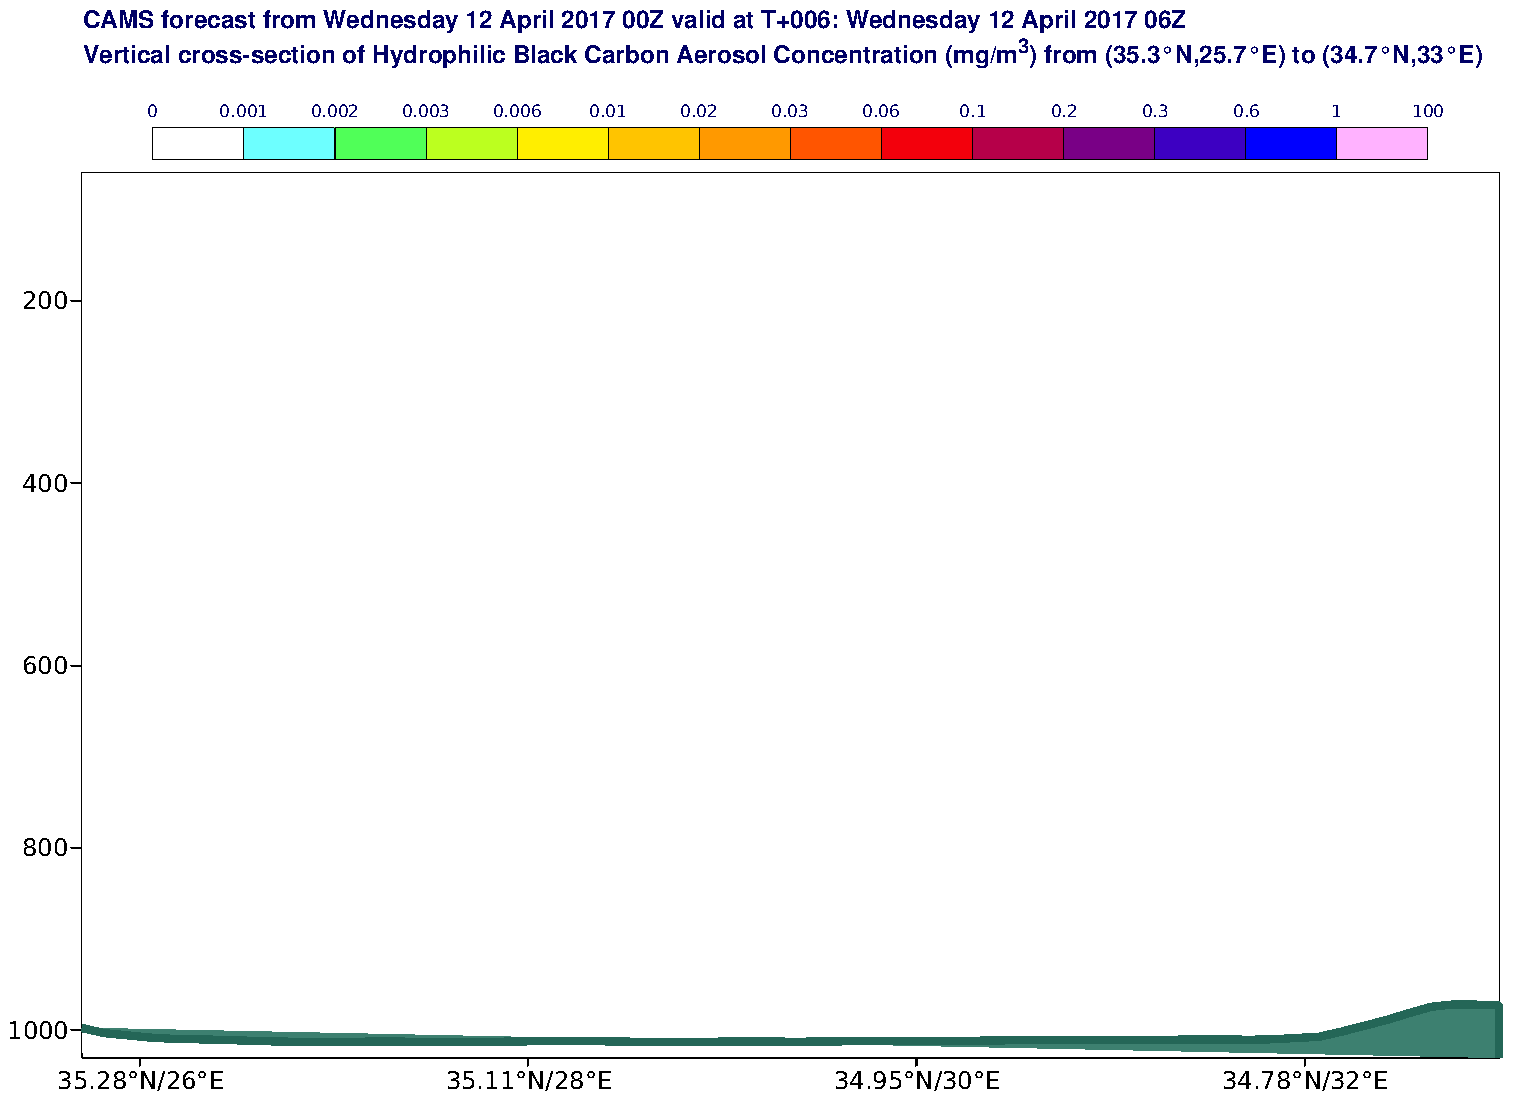 Vertical cross-section of Hydrophilic Black Carbon Aerosol Concentration (mg/m3) valid at T6 - 2017-04-12 06:00